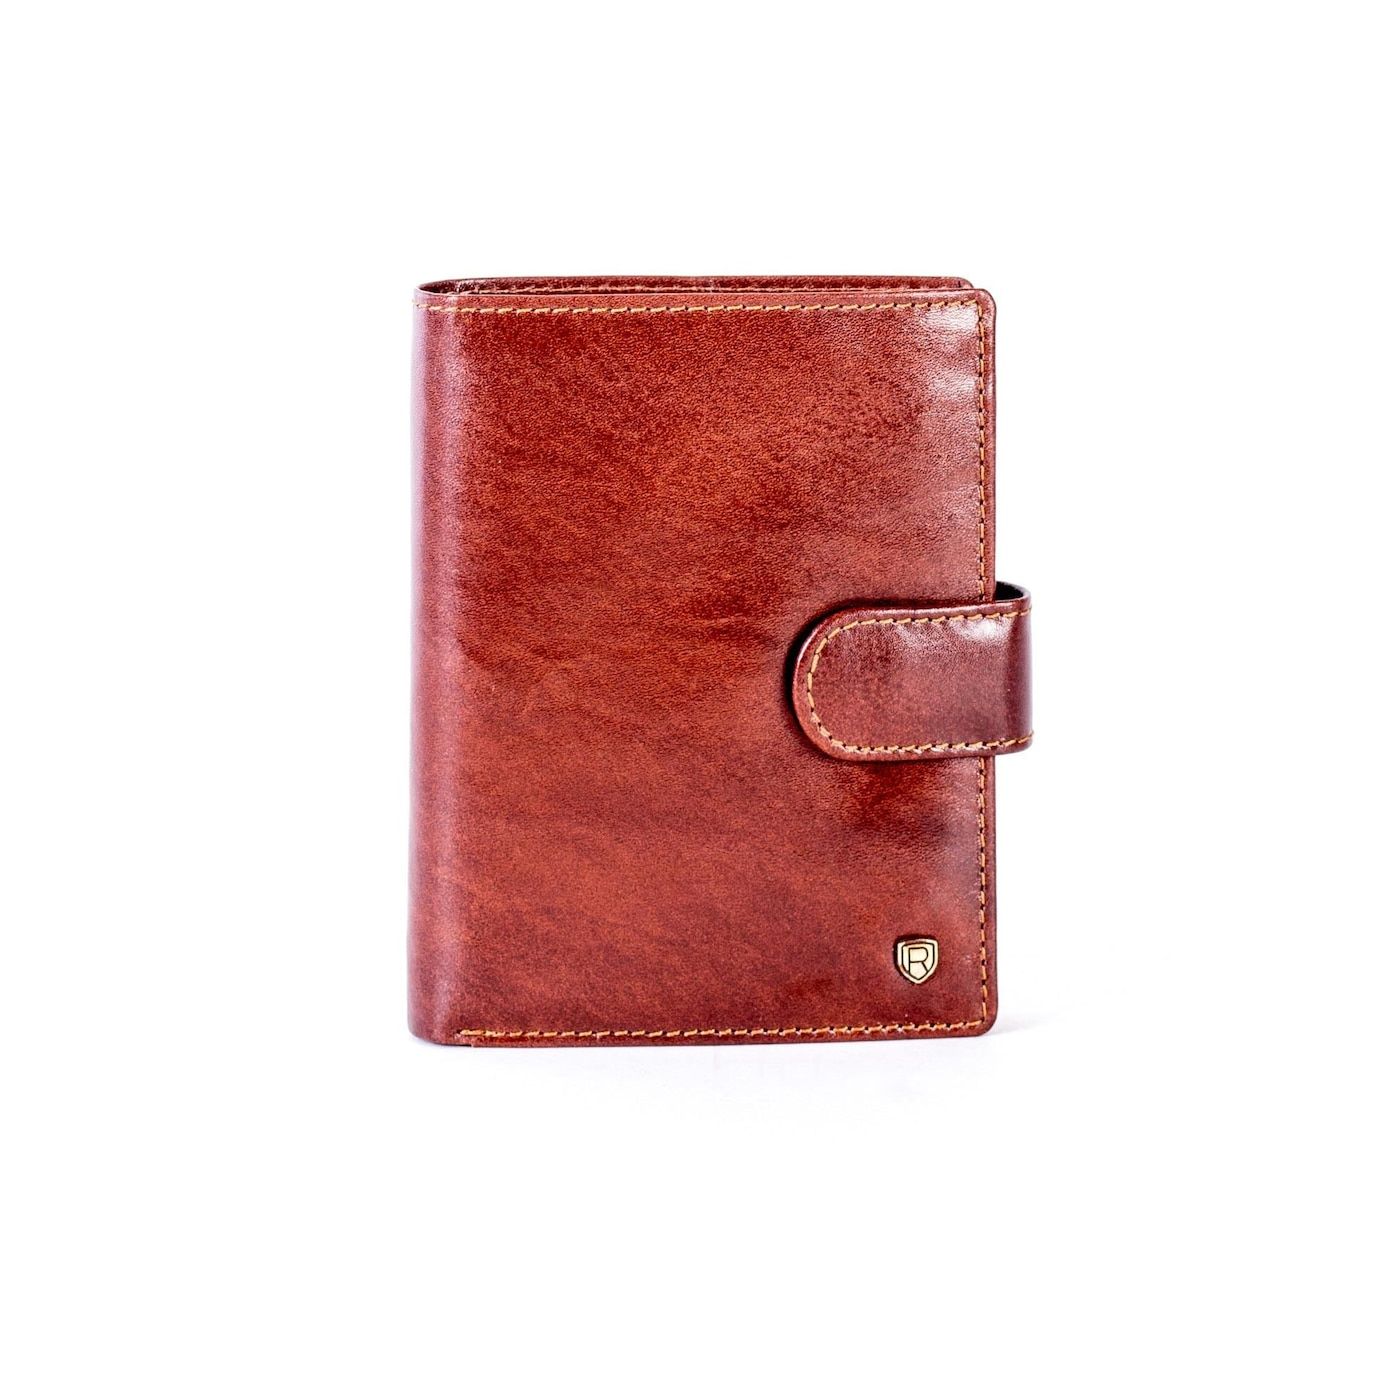 Brown leather wallet with a latch